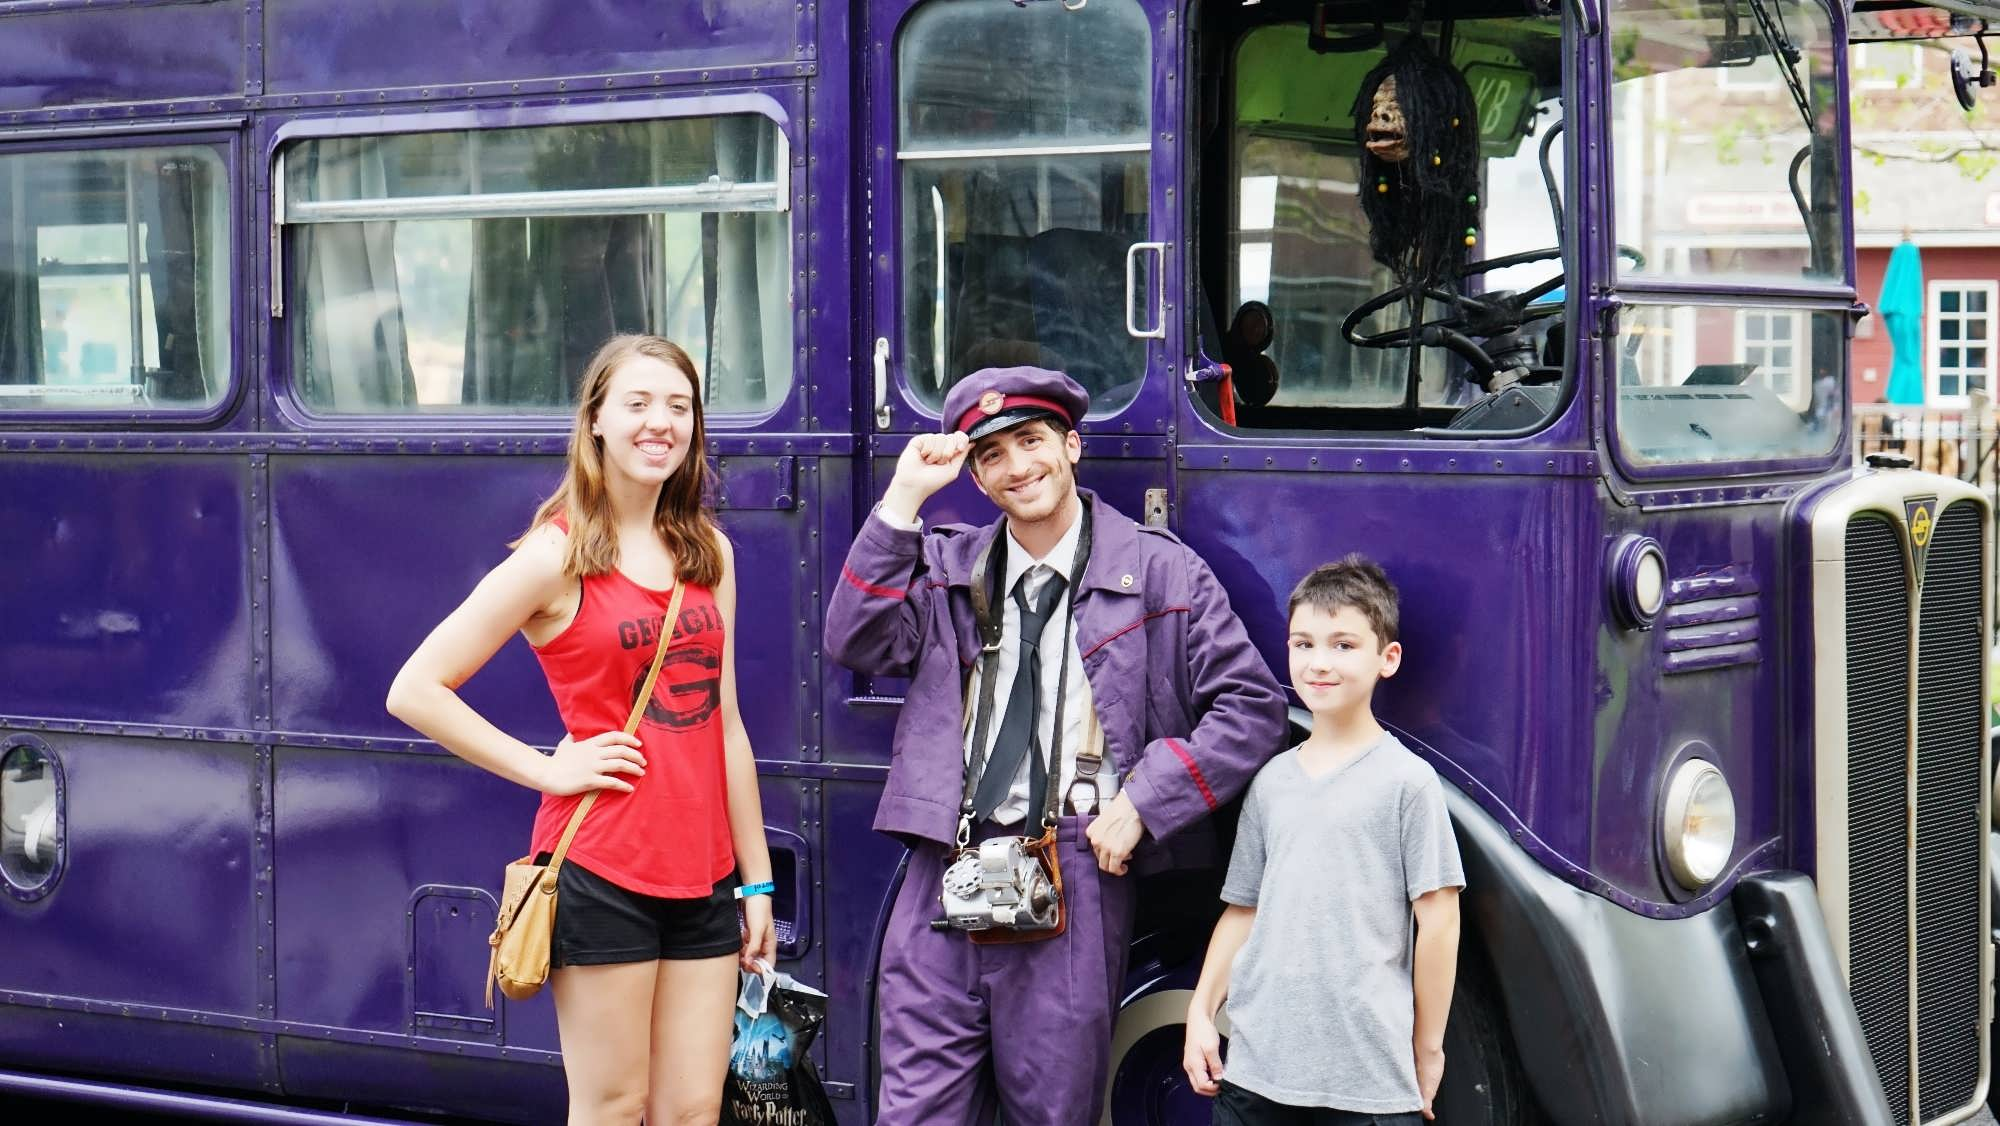 The Knight Bus and the shrunken head